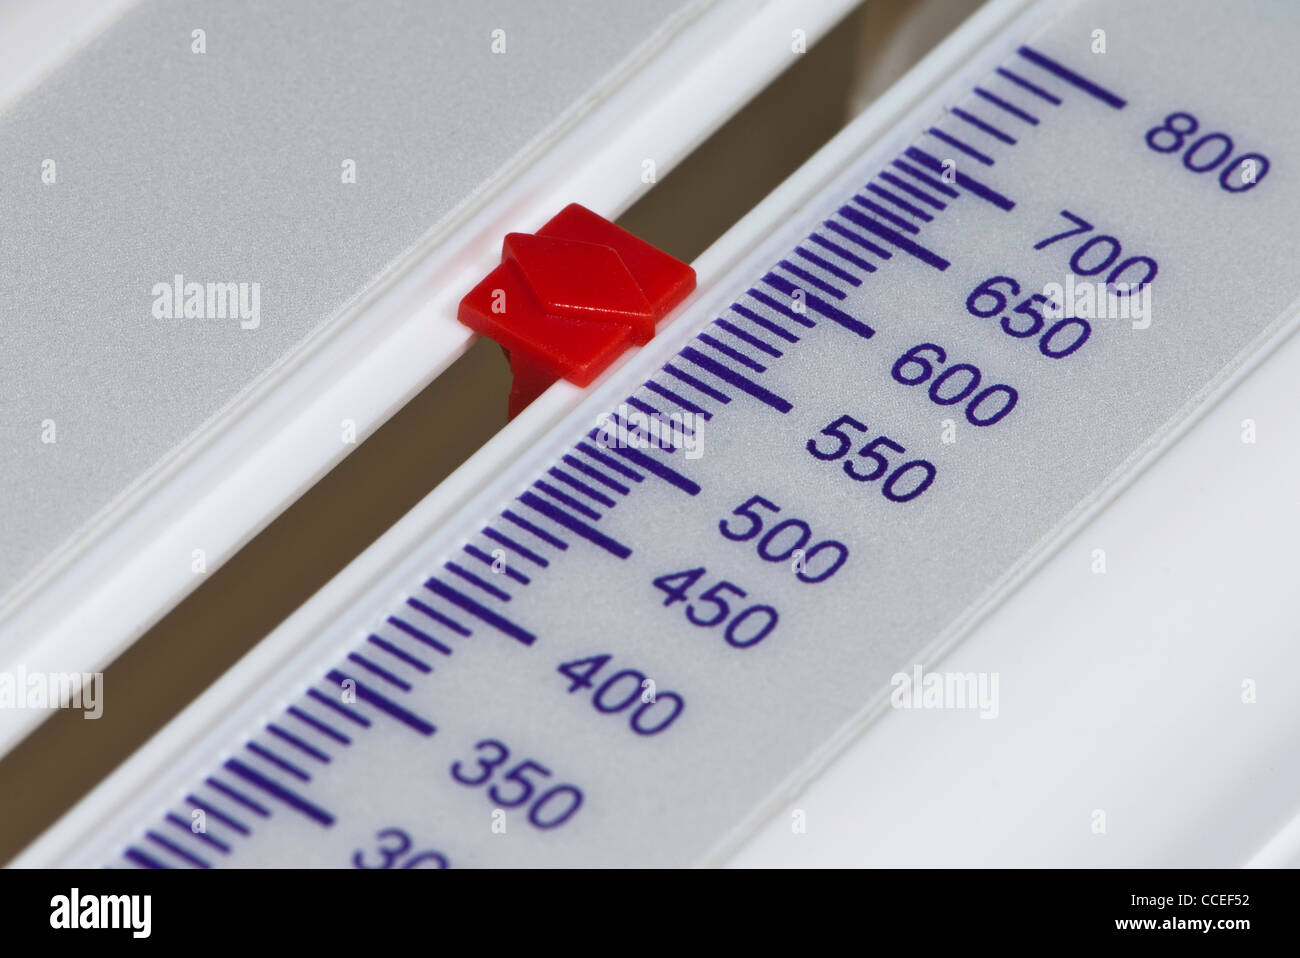 Close up of scale on a Peak flow meter at 550 - Stock Image